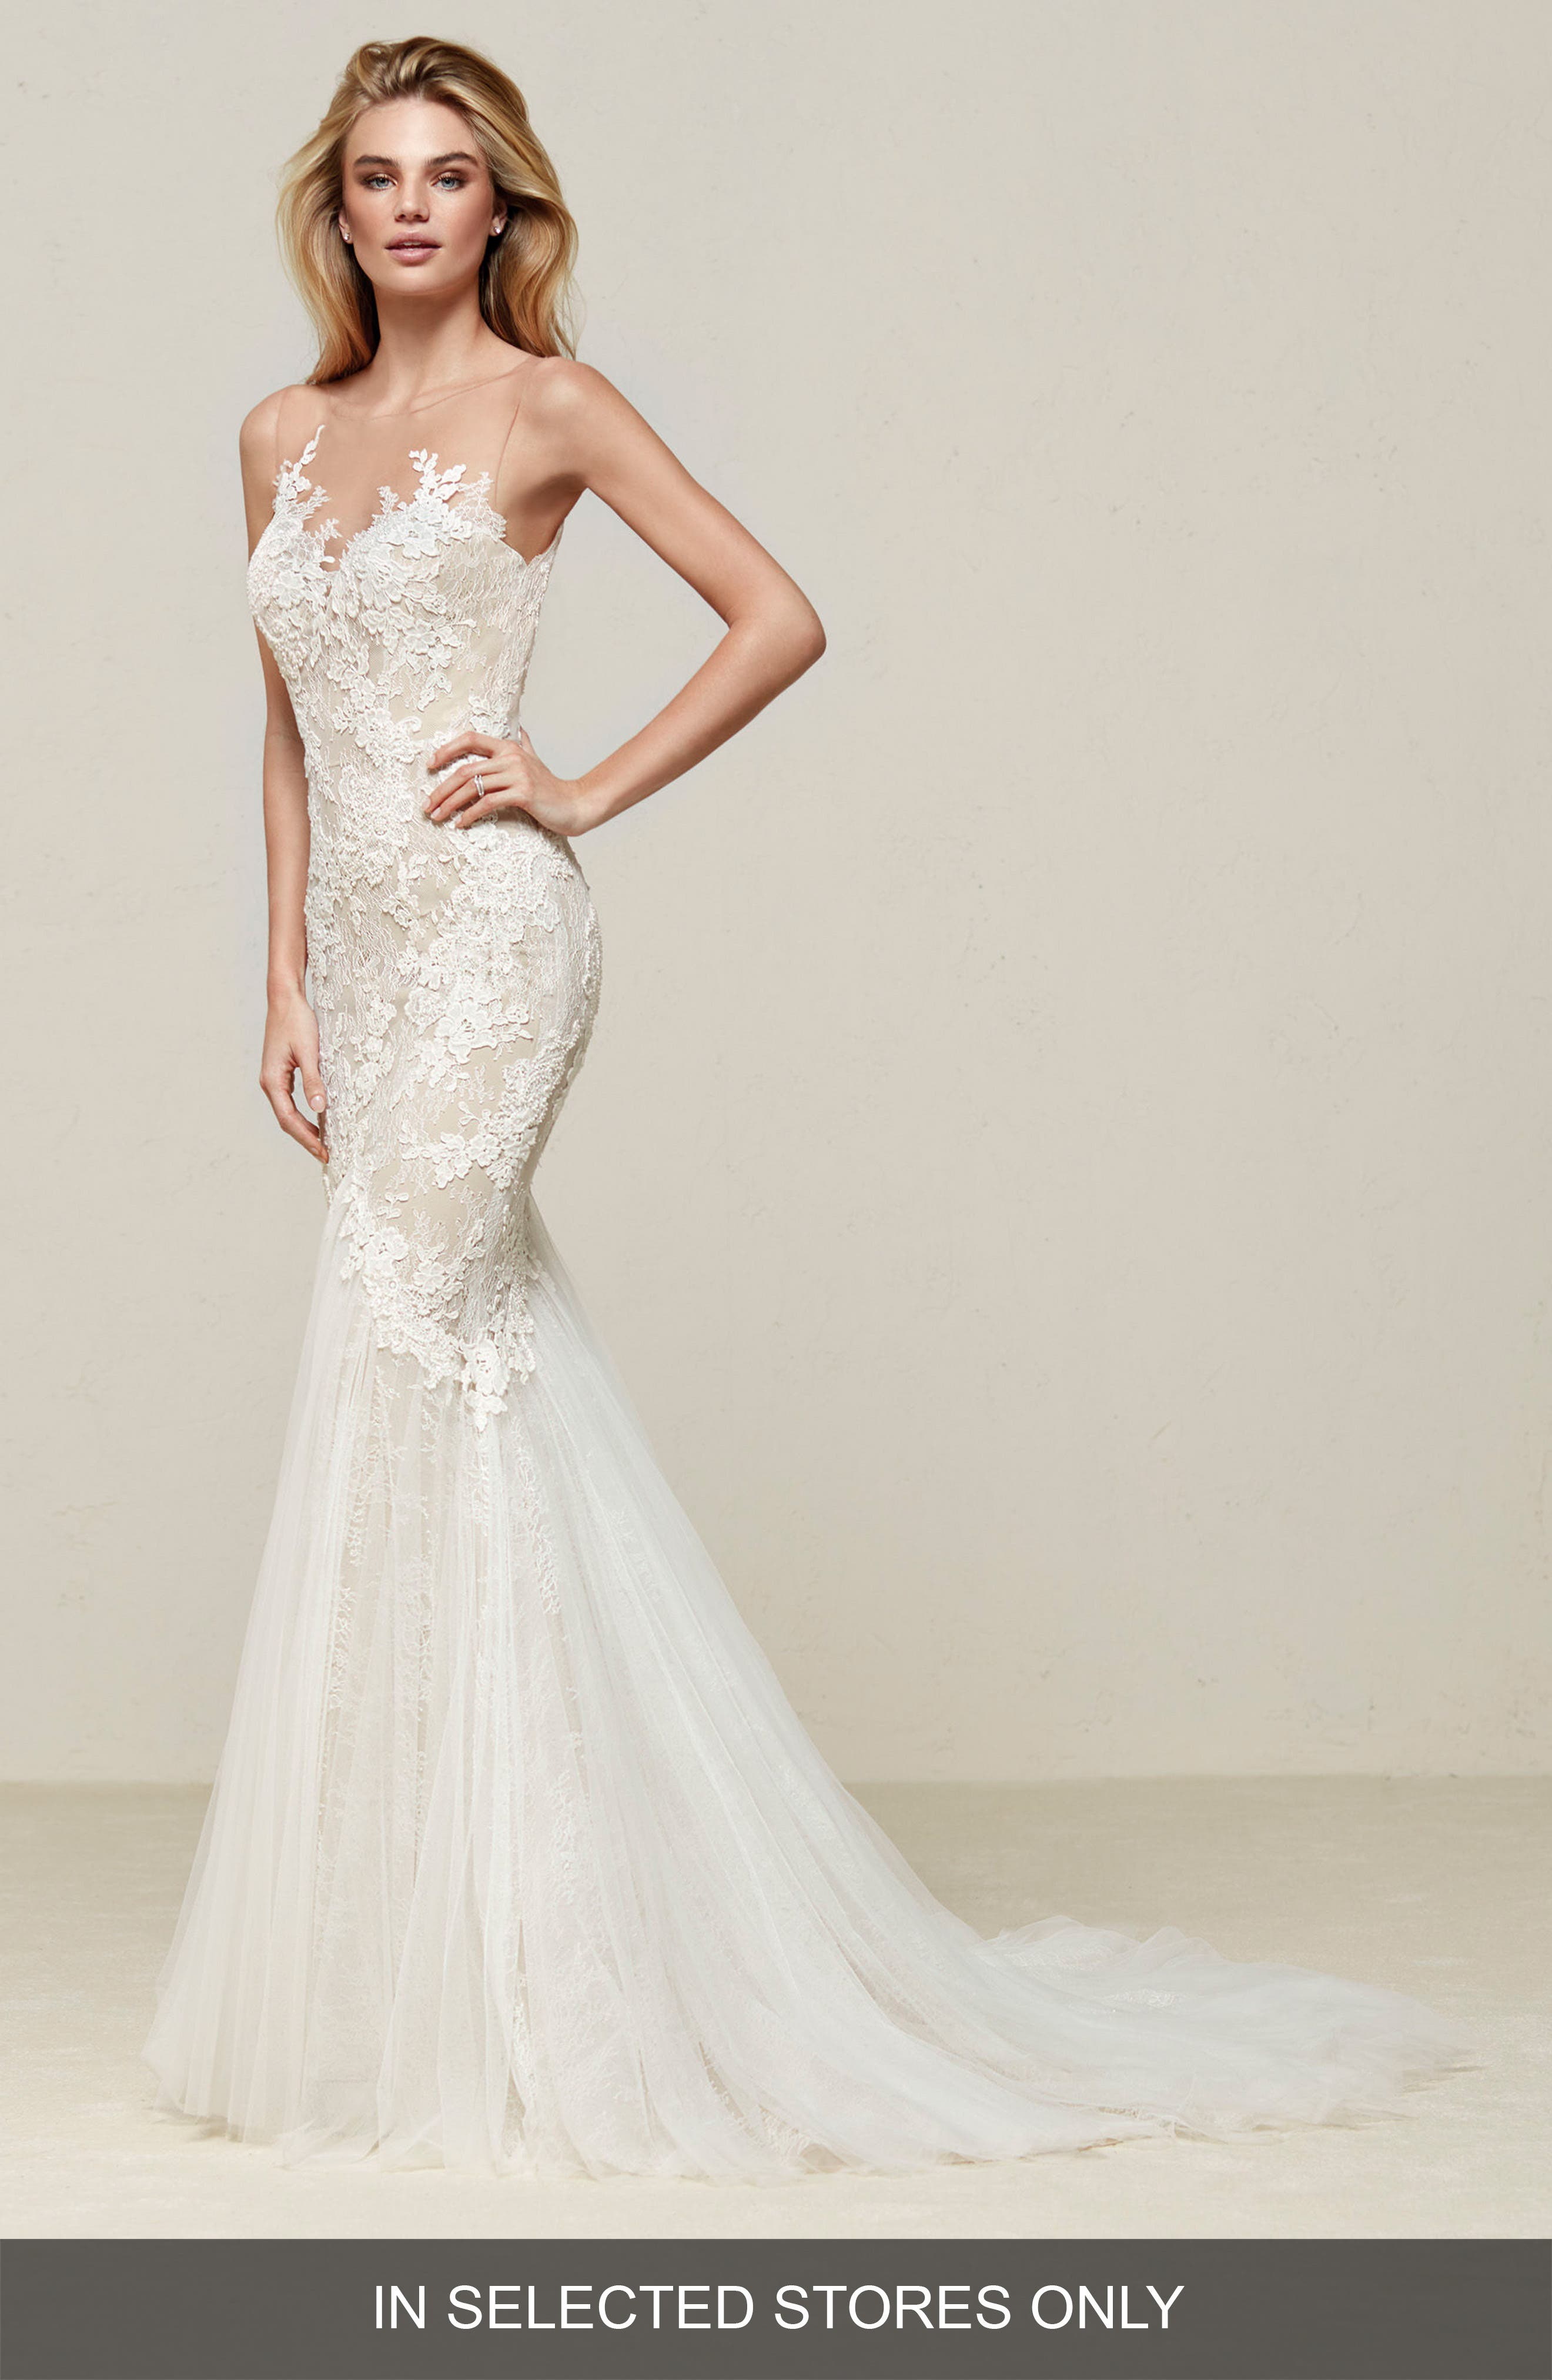 Drinam Beaded Lace & Tulle Mermaid Gown,                             Main thumbnail 1, color,                             OFF WHITE